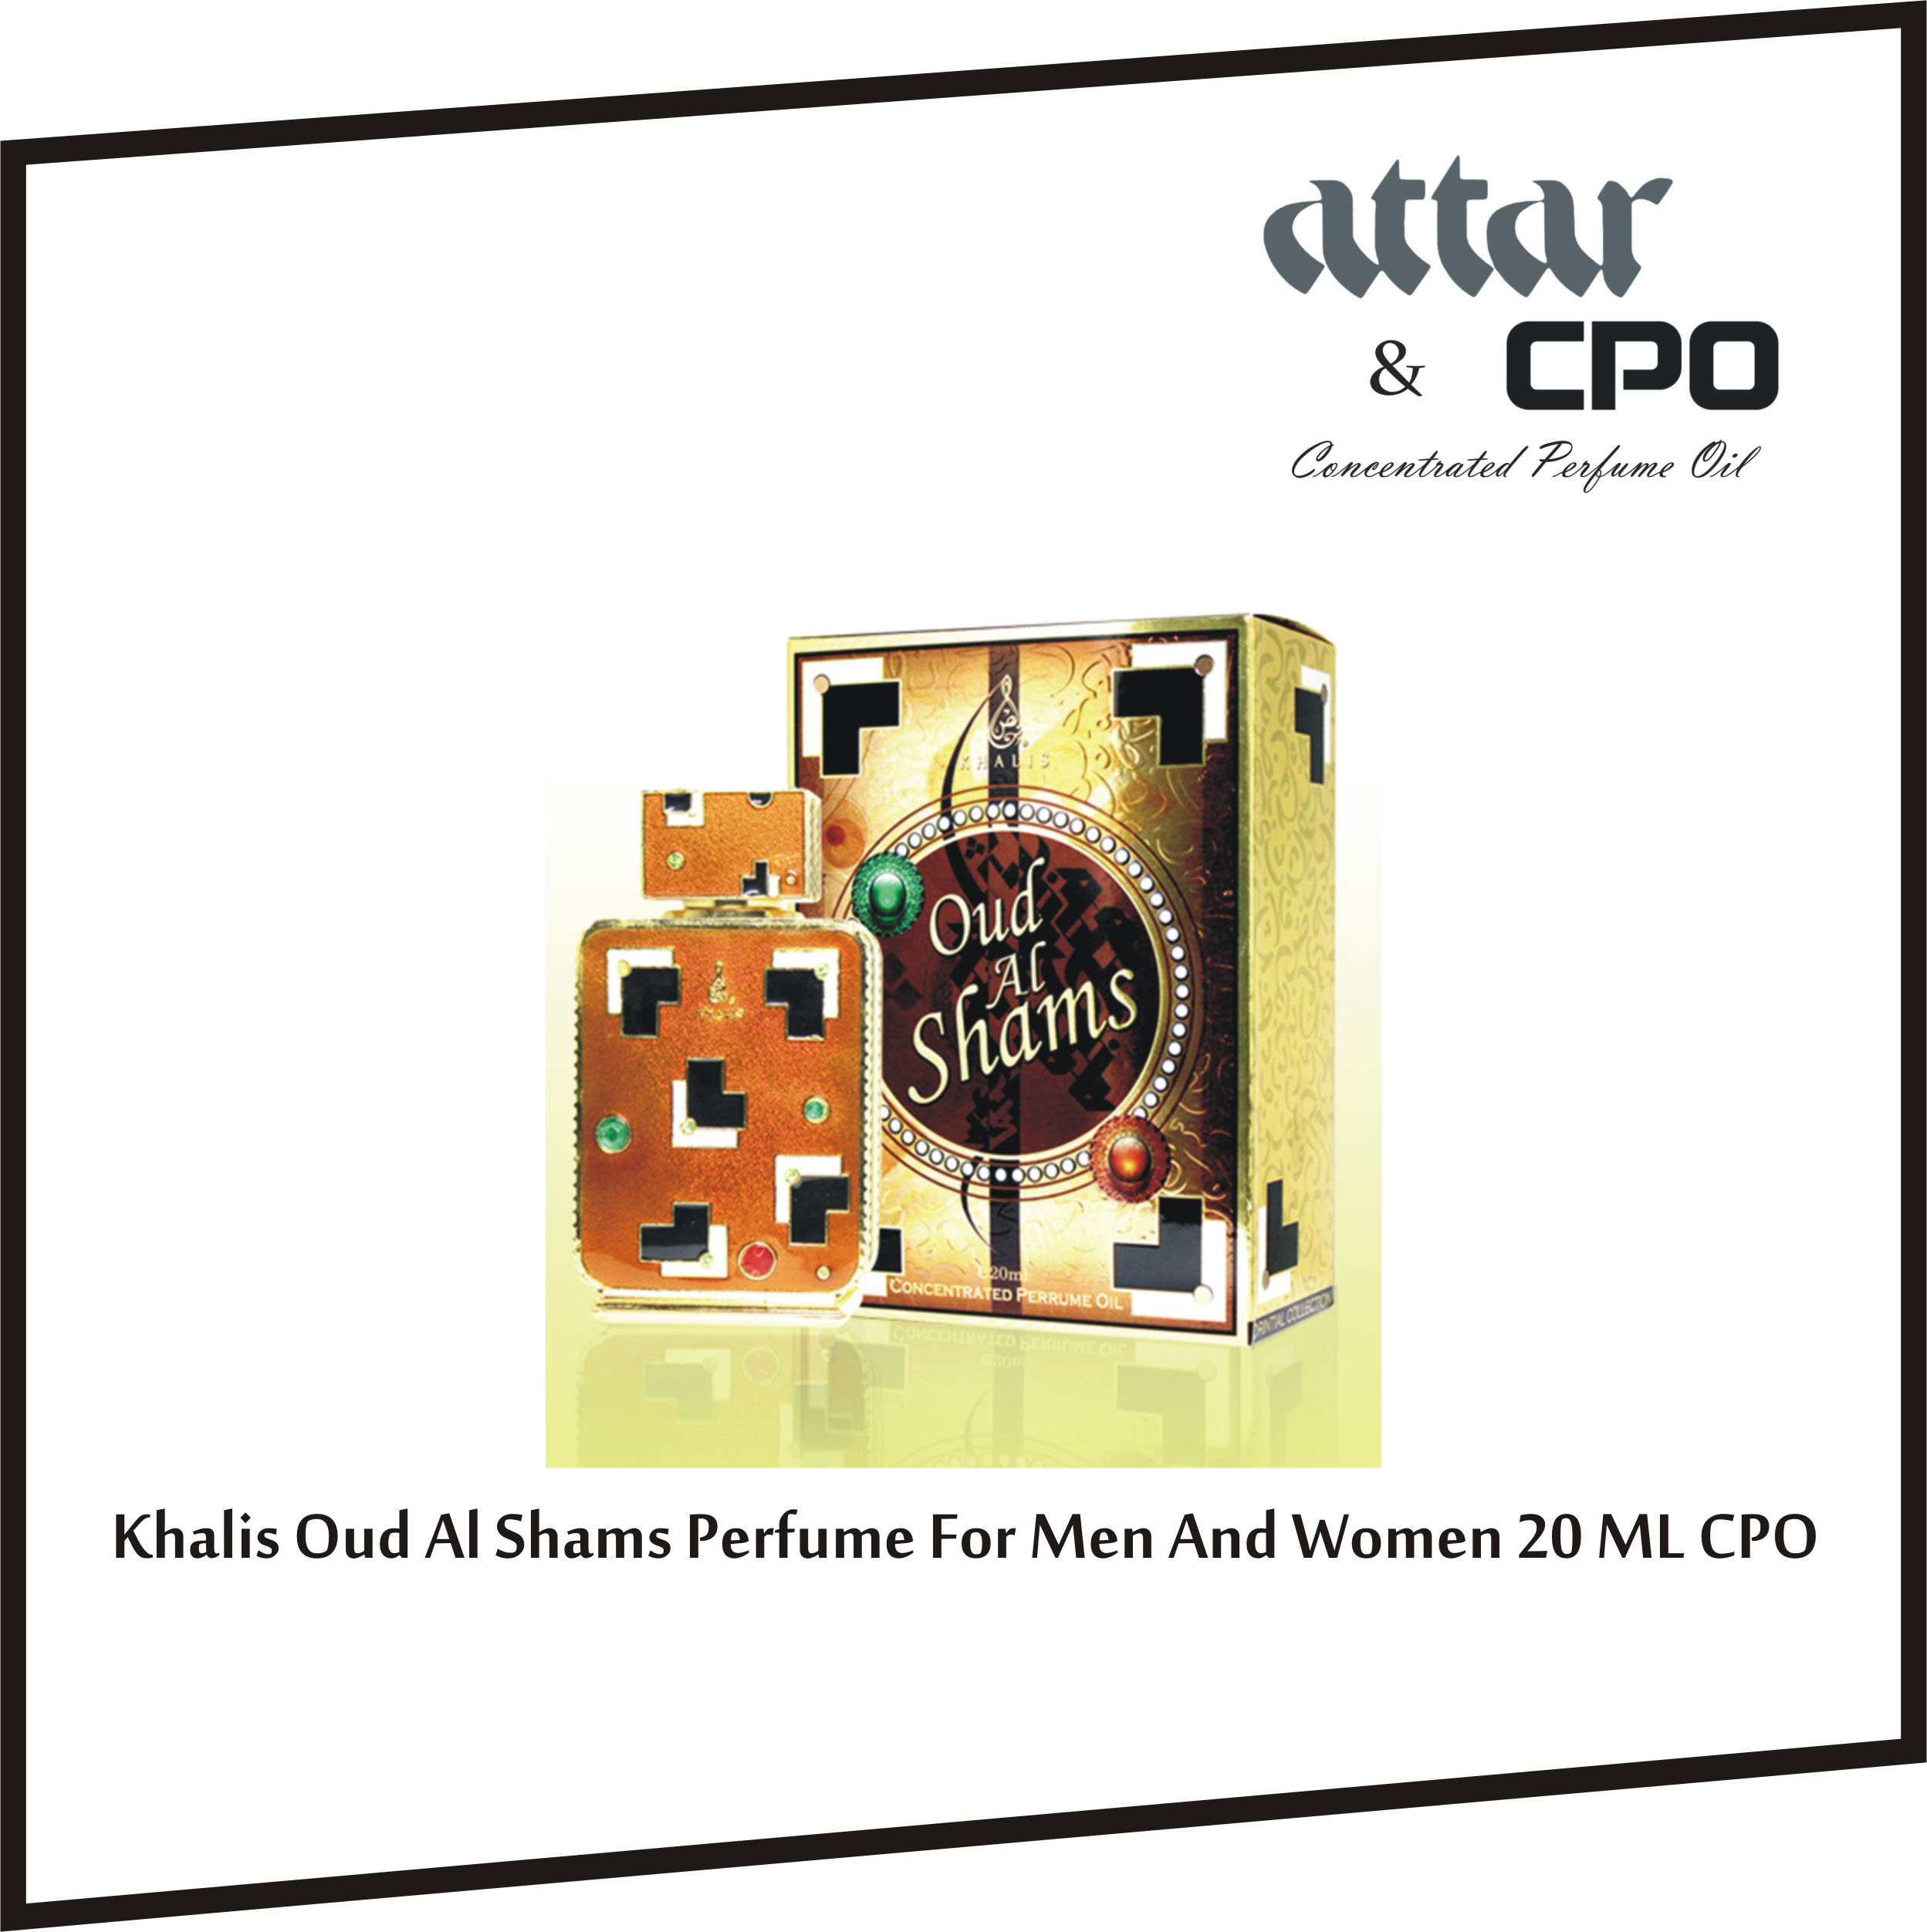 khalis-oud-al-shams-perfume-for-men-and-women